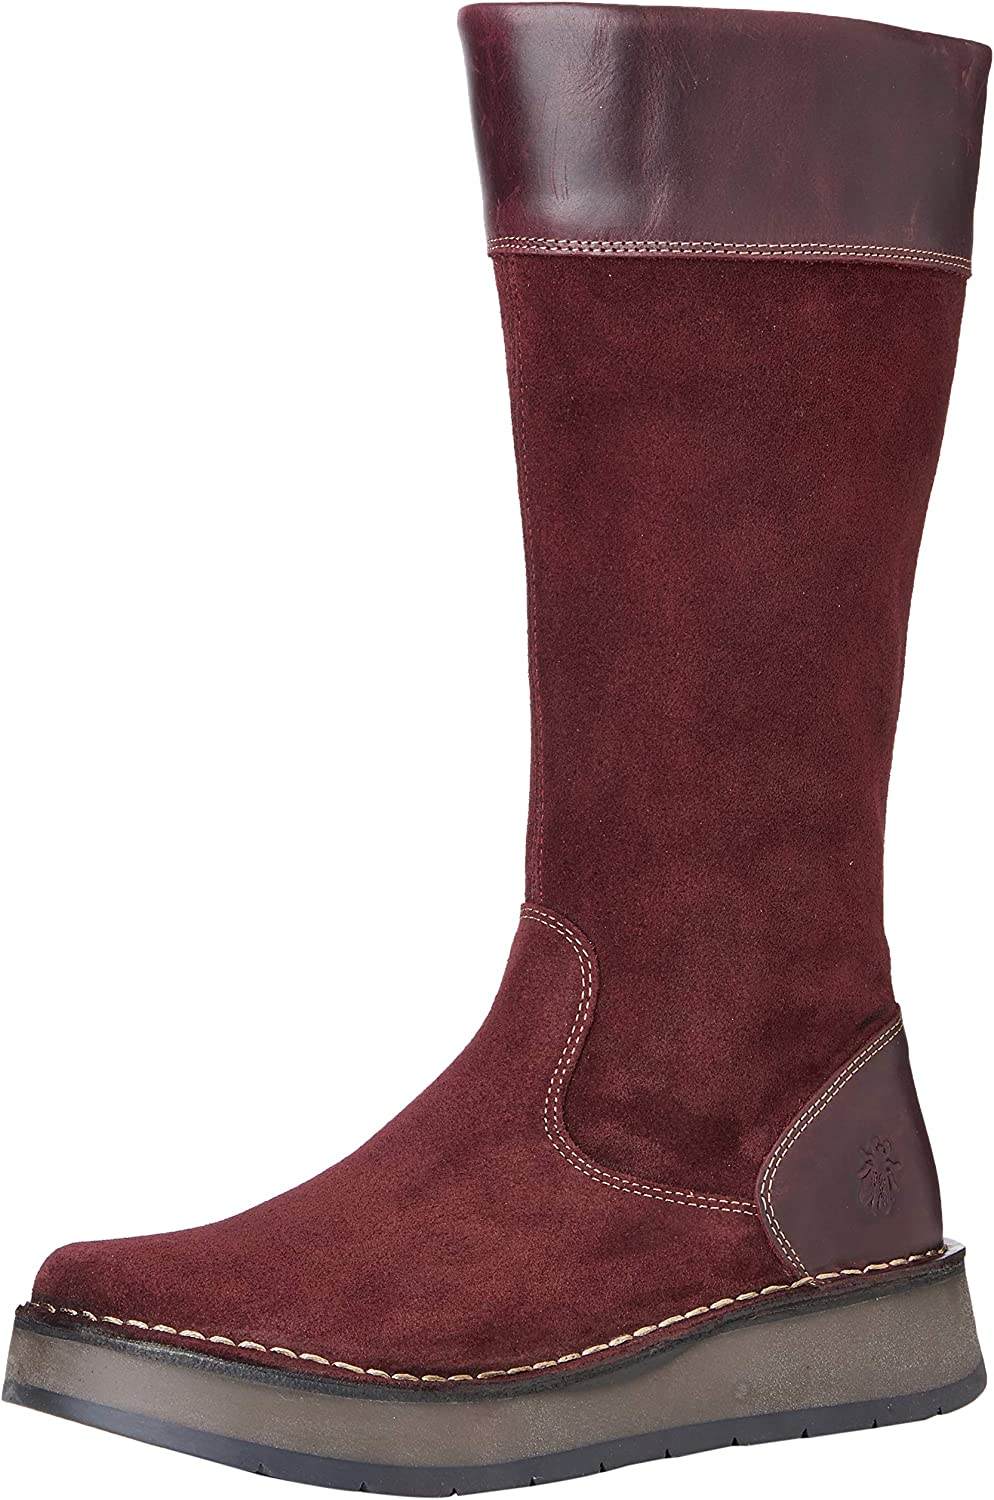 Selling and selling Fly Oakland Mall London Women's Ripa056fly High Knee Boot